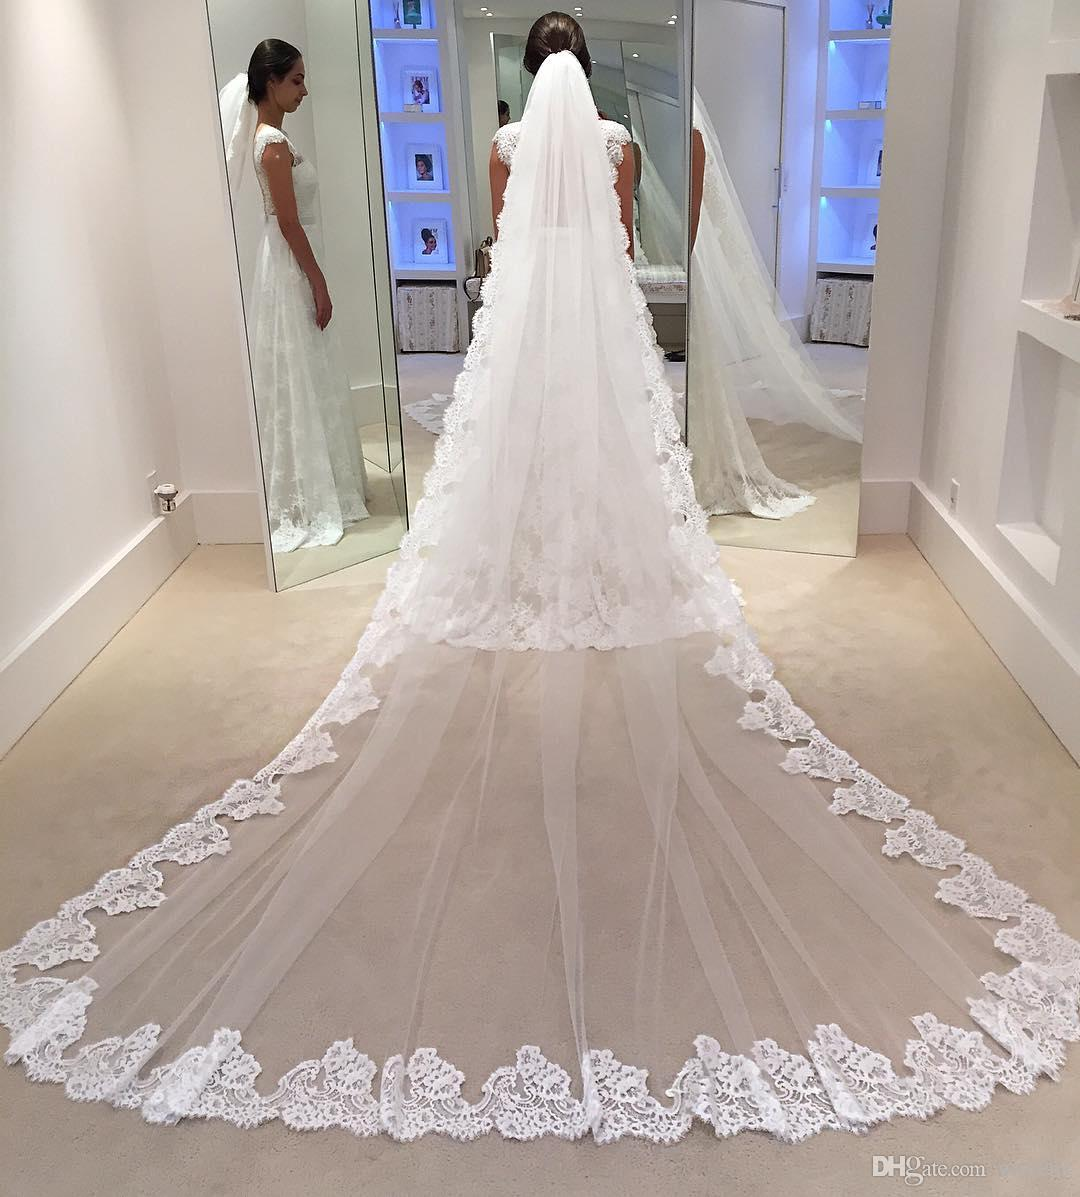 Cheap White 3M One Layer Lace Wedding Veils Appliqued Long Cathedral Length Veils Tulle Bridal Veil With Comb